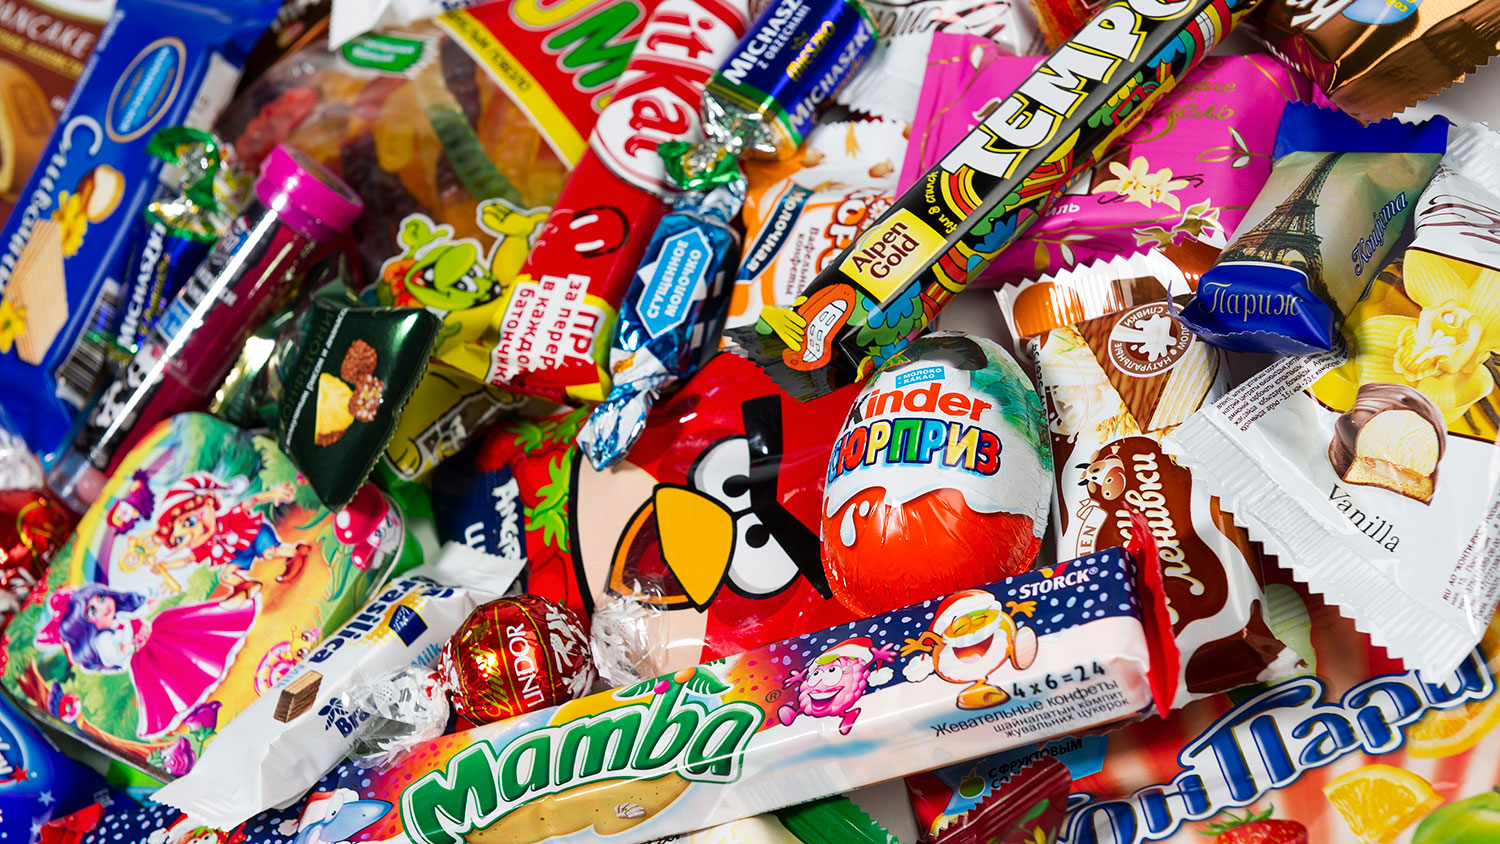 Junk Food Cravings Linked to Workplace Stress and Lack of Sleep in New Study